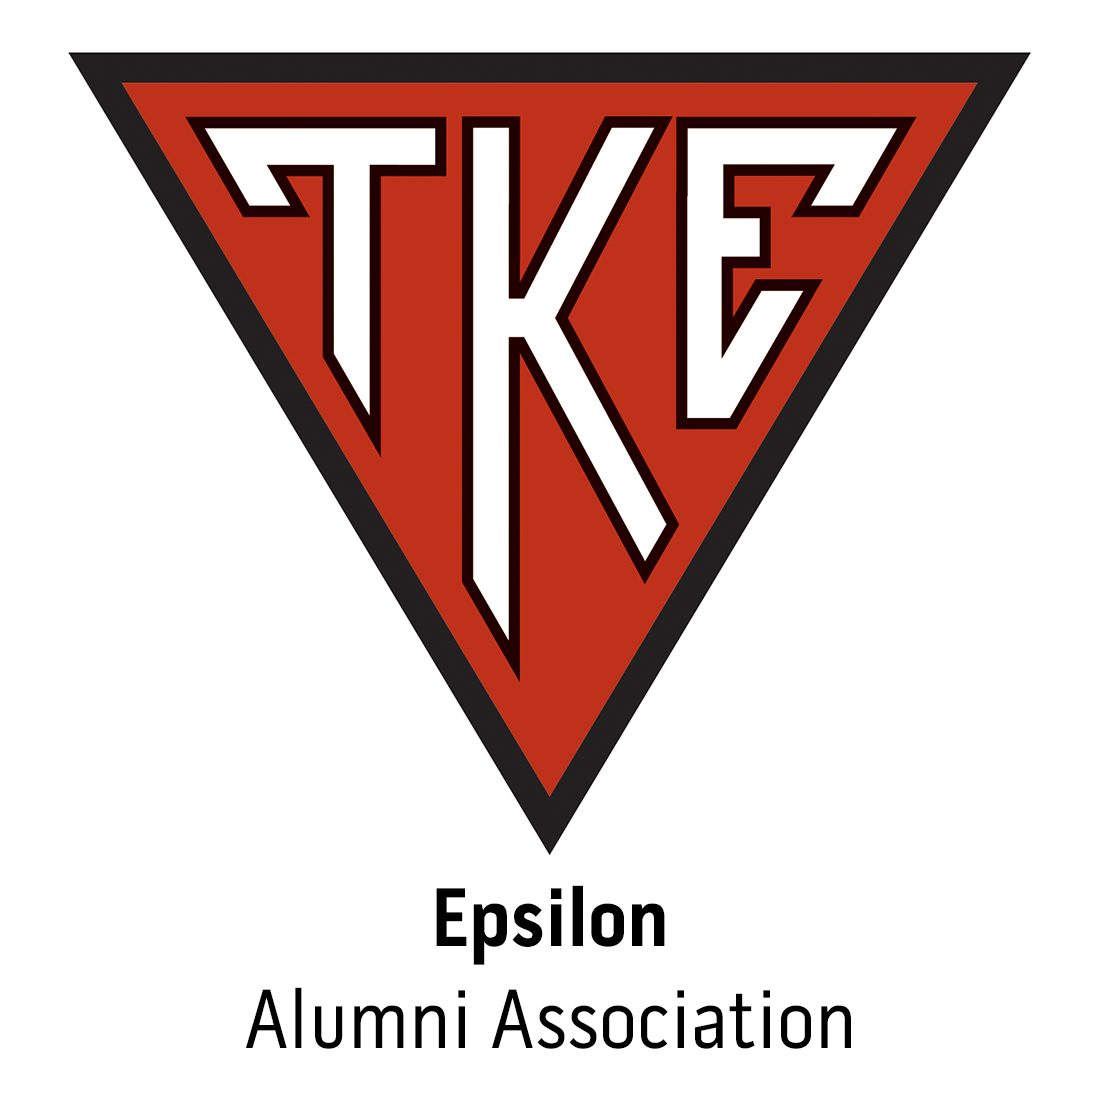 Epsilon Alumni Association at Iowa State University